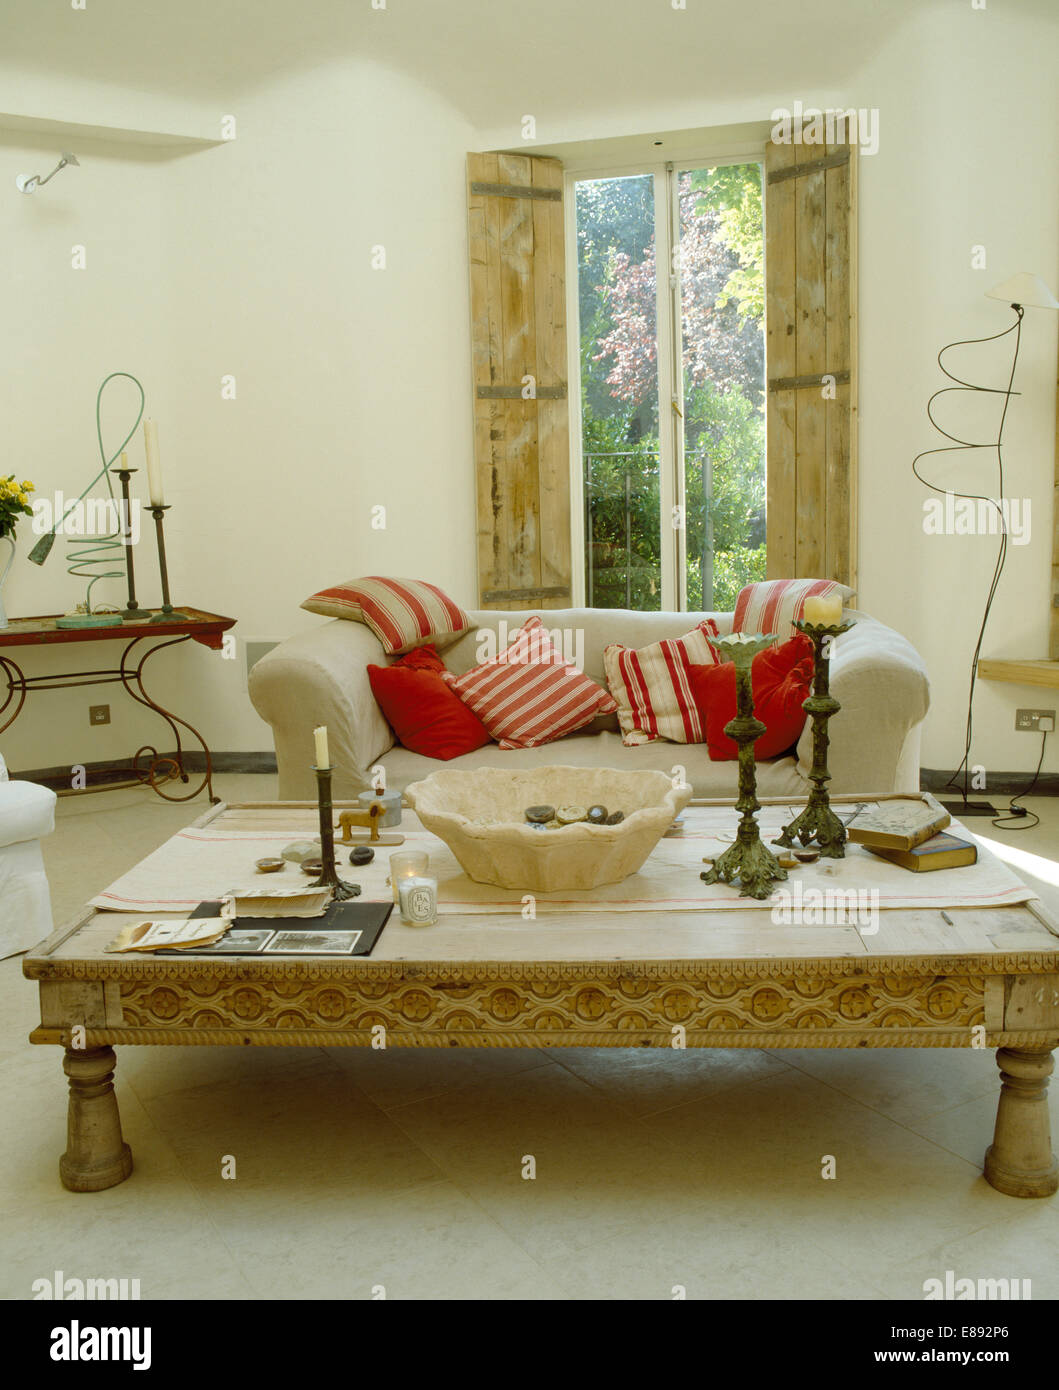 Limewashed Indonesian Coffee Table In Living Room With White Sofa With Red  Cushions In Front Of